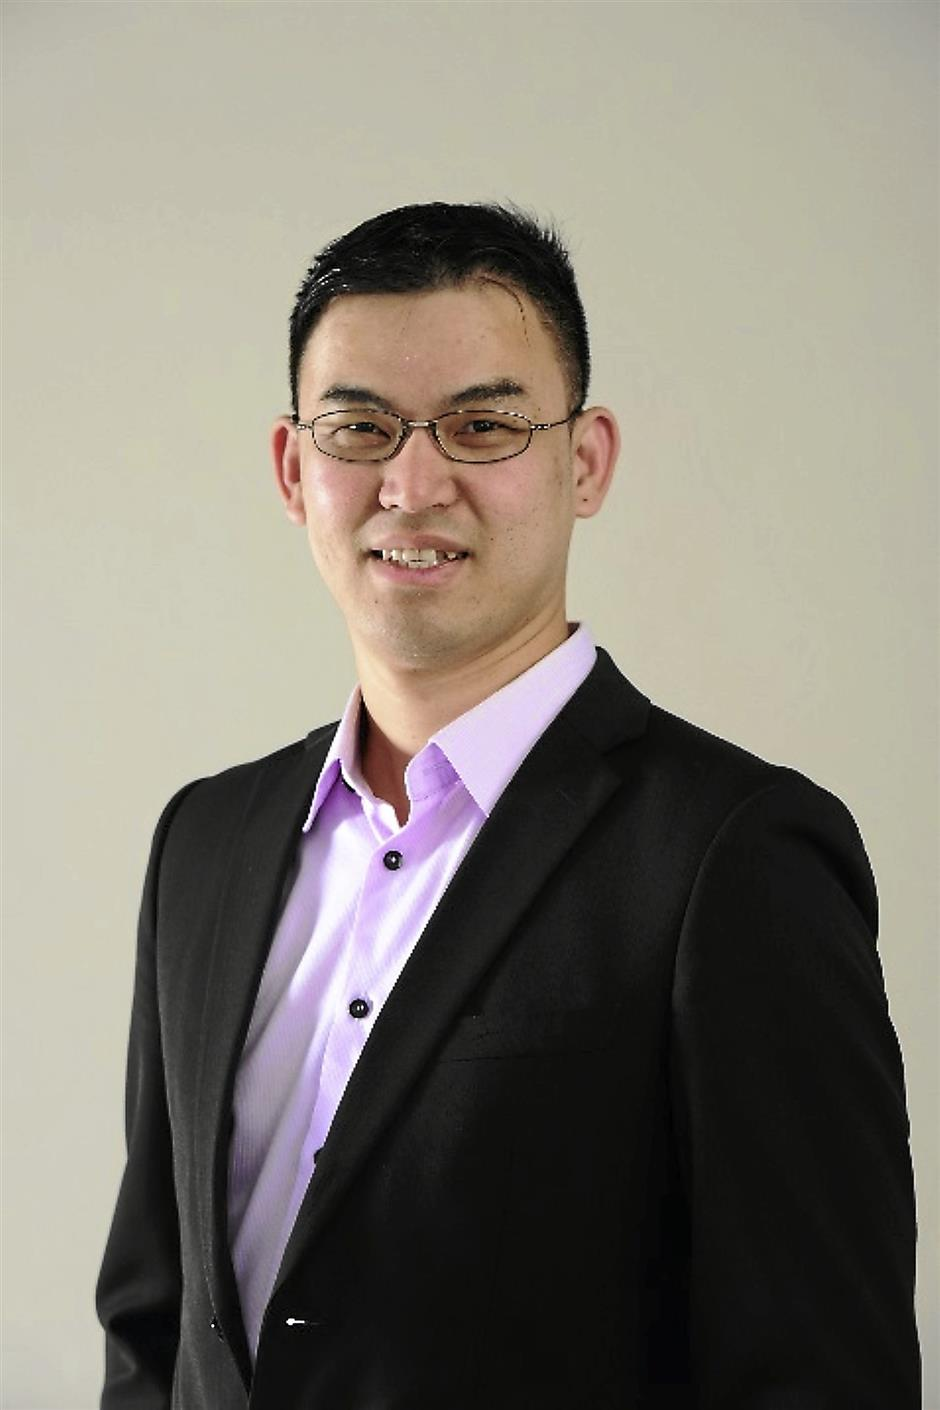 Go Su Gim, security advisor for F-Secure in the Asia Pacific region